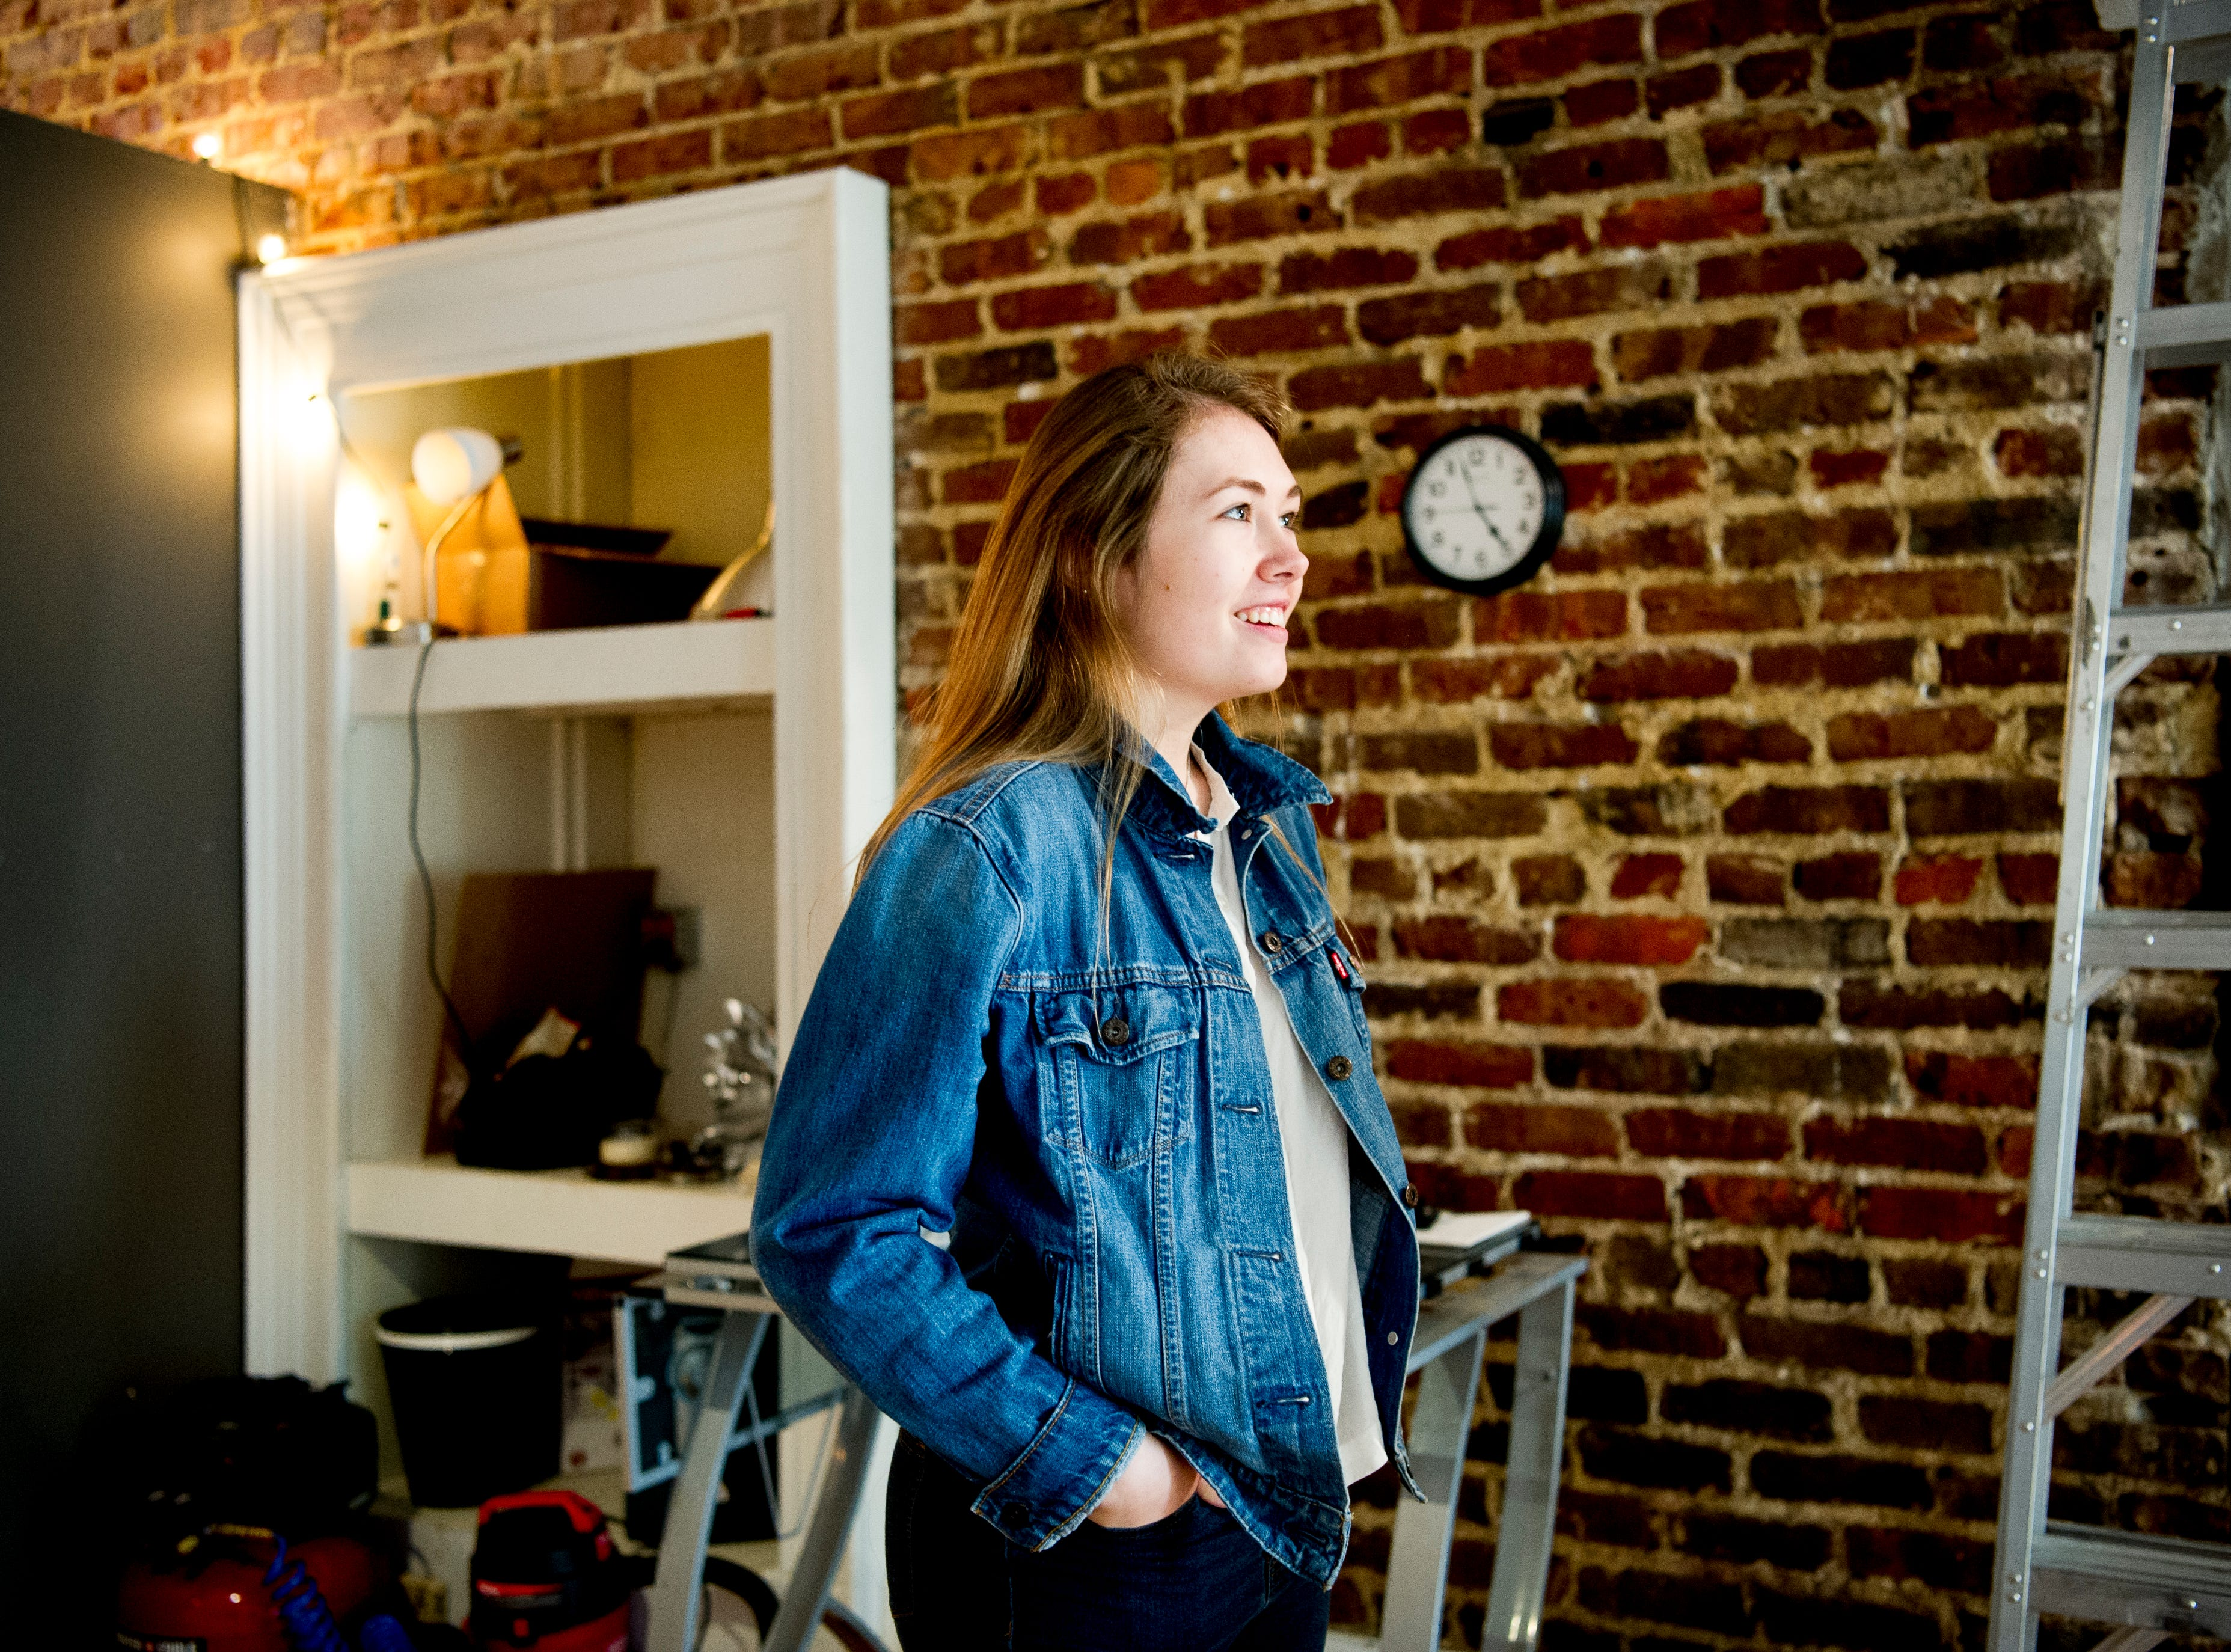 Katherine Higgins gives a tour of the future Jacks of Knoxville shop at 133c South Gay Street in Knoxville, Tennessee on Friday, January 4, 2019. The shop, which is planned to open in February, will have a strong focus on selling arts and crafts made by local makers.